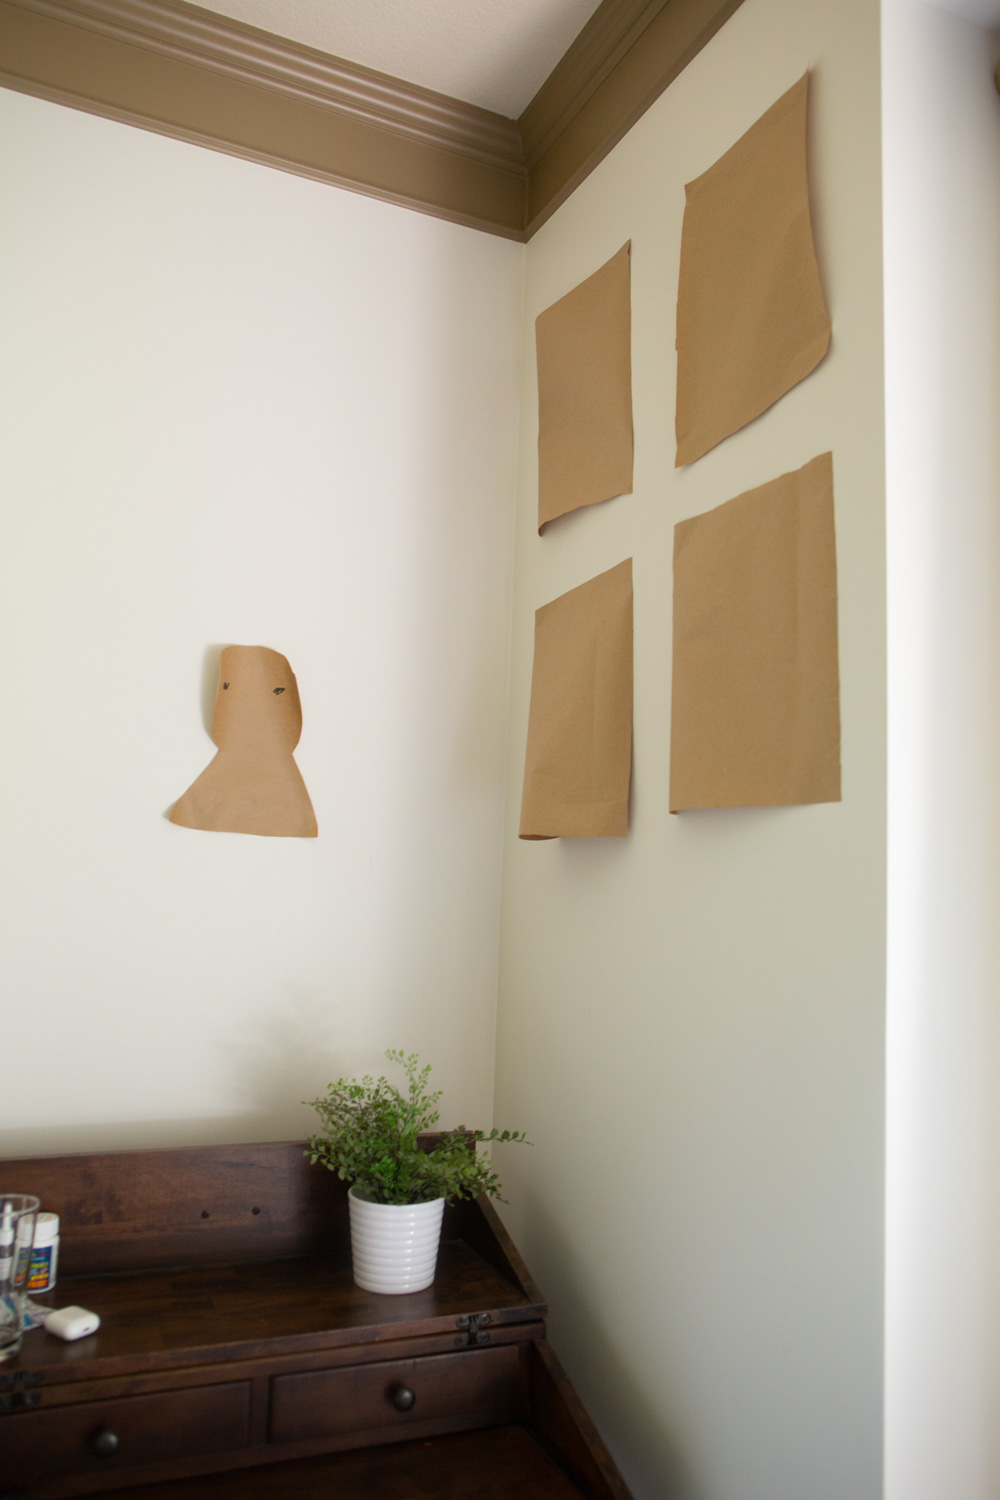 DIY Wall Sconce Lighting without Electricity or Power ... on Sconces No Electric Power id=23689